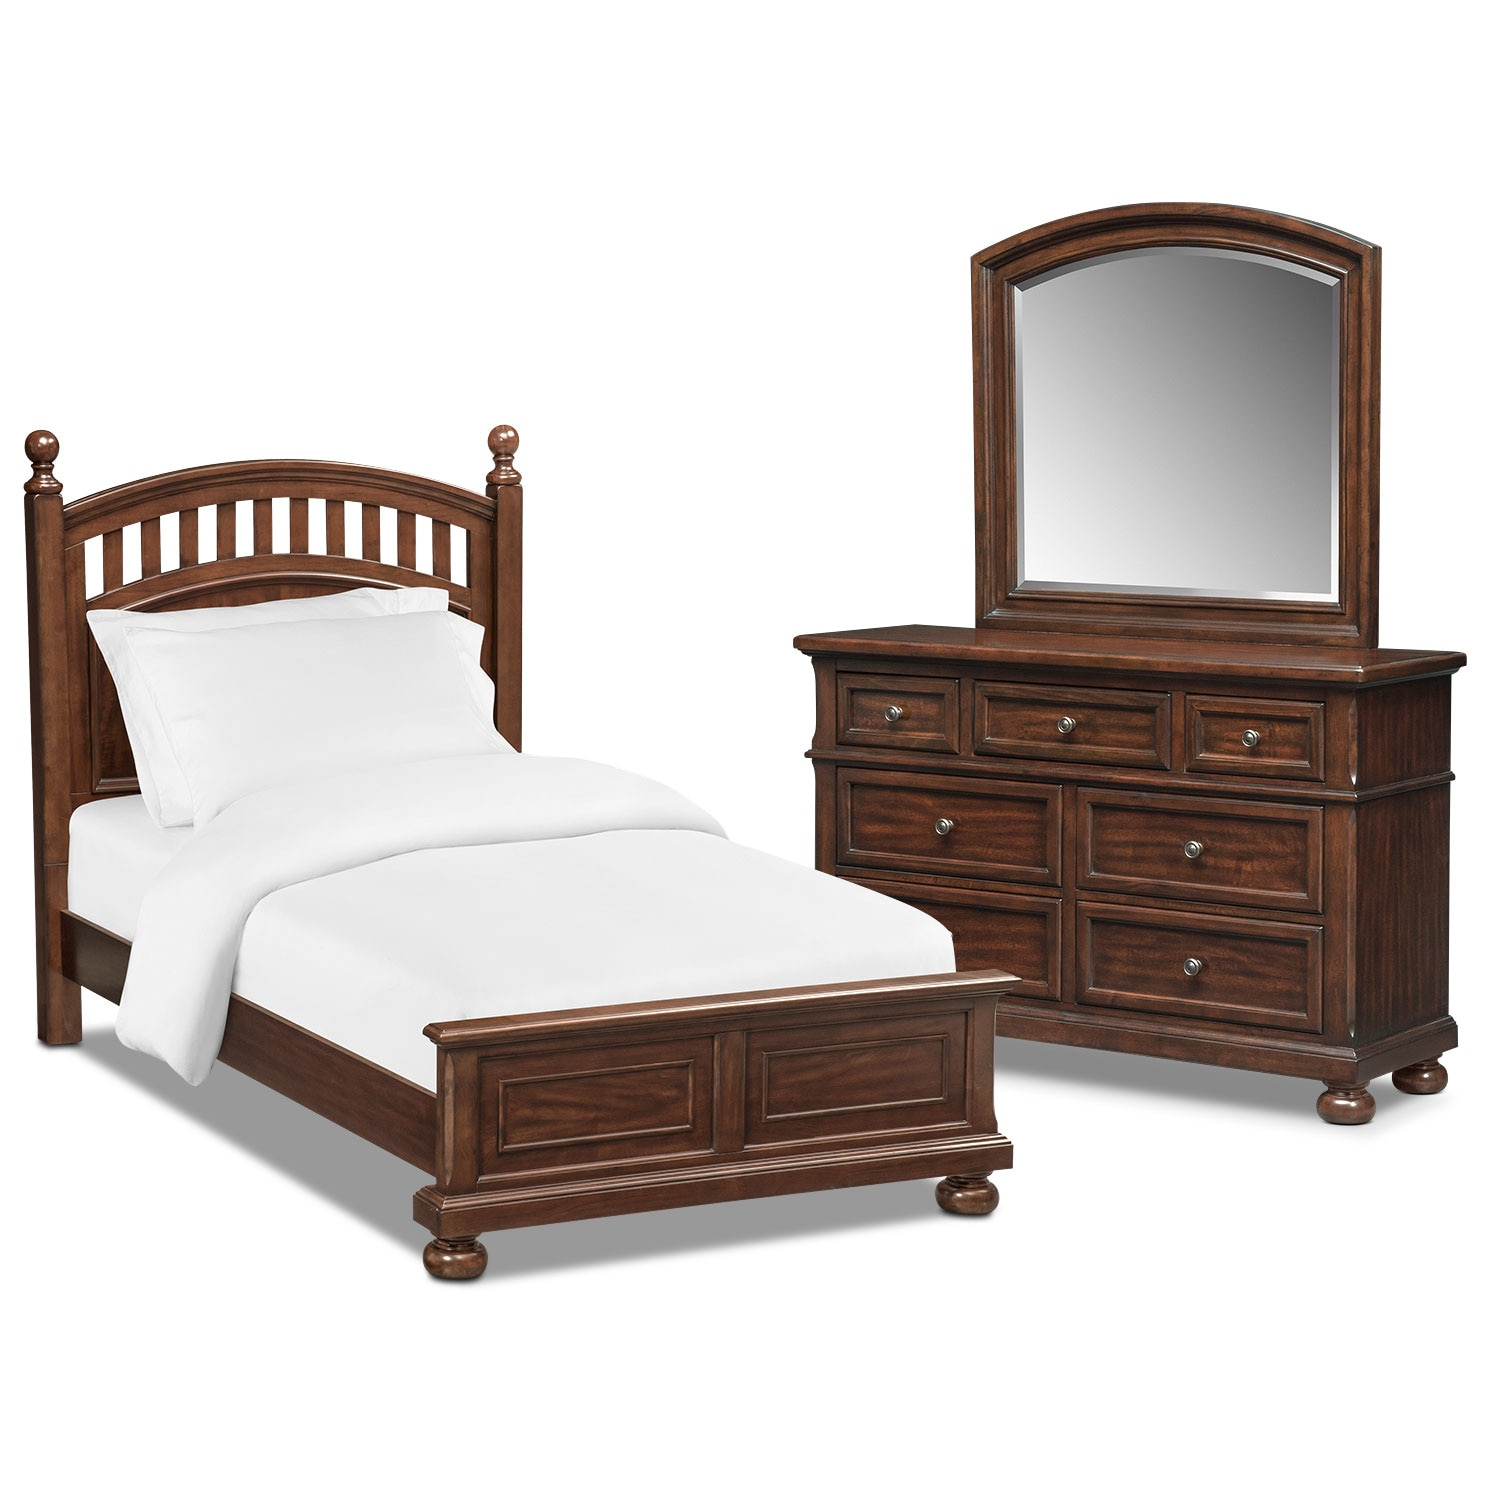 Bedroom Furniture - Hanover Youth 5-Piece Twin Poster Bedroom Set - Cherry